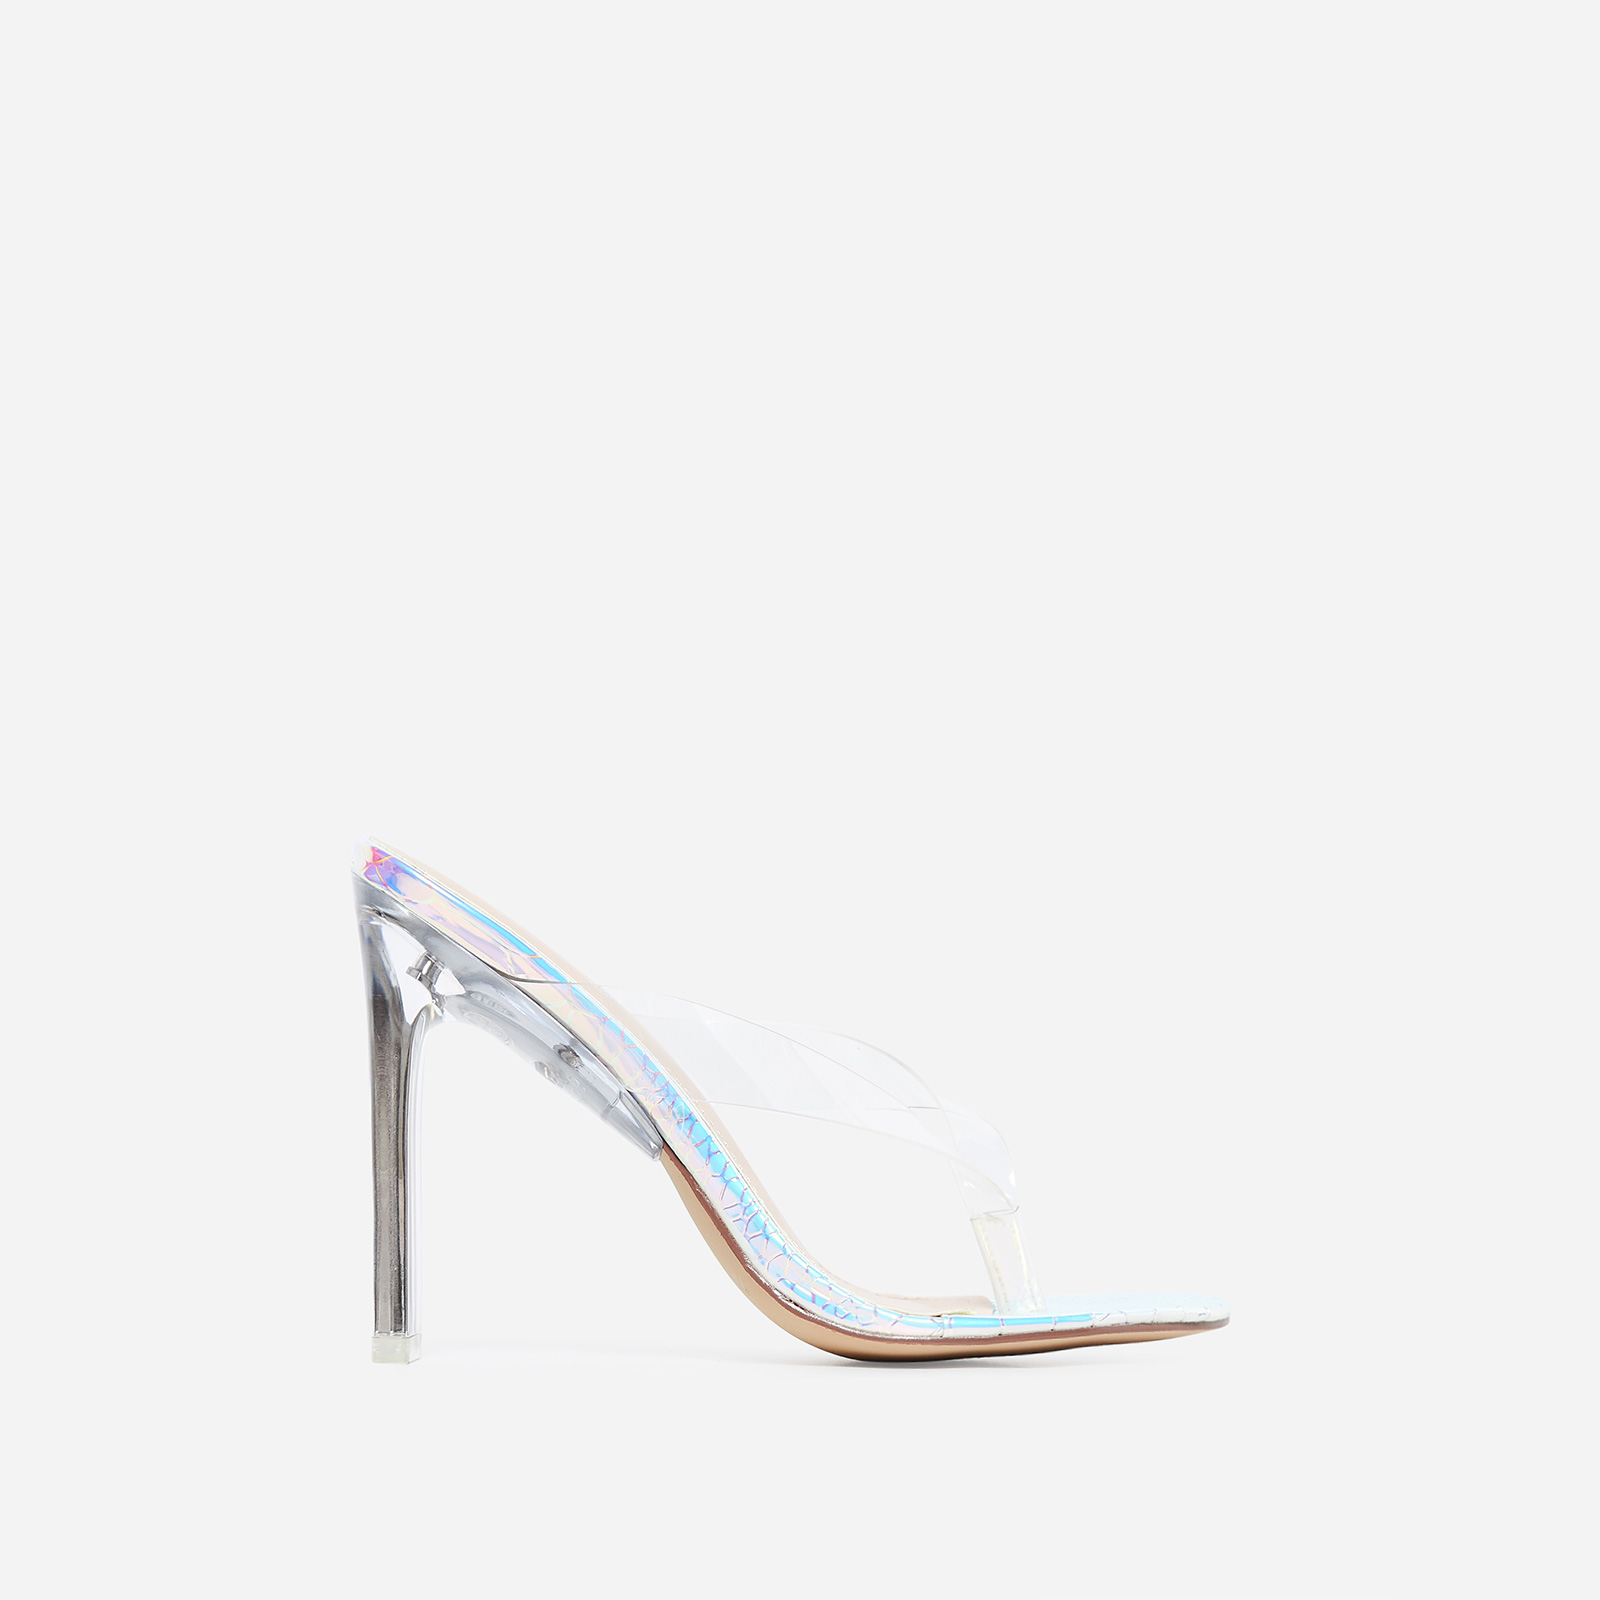 Scandal Flip Flop Flat Perspex Heel In Silver Snake Print Faux Leather